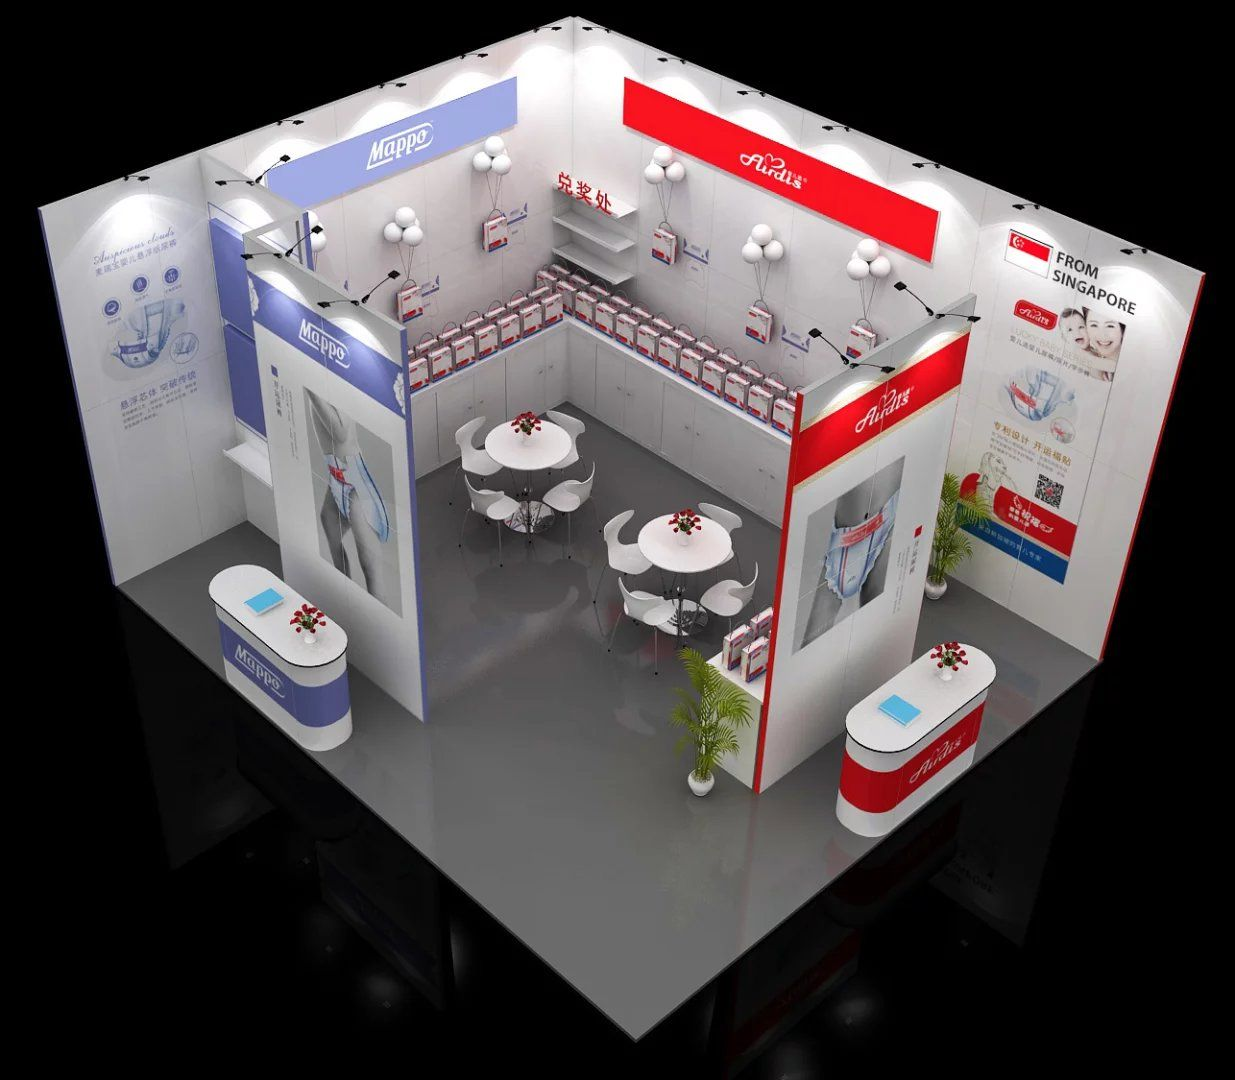 Exhibition Stand Builders China : Booth stand builder in shanghai china vilido exhibitions